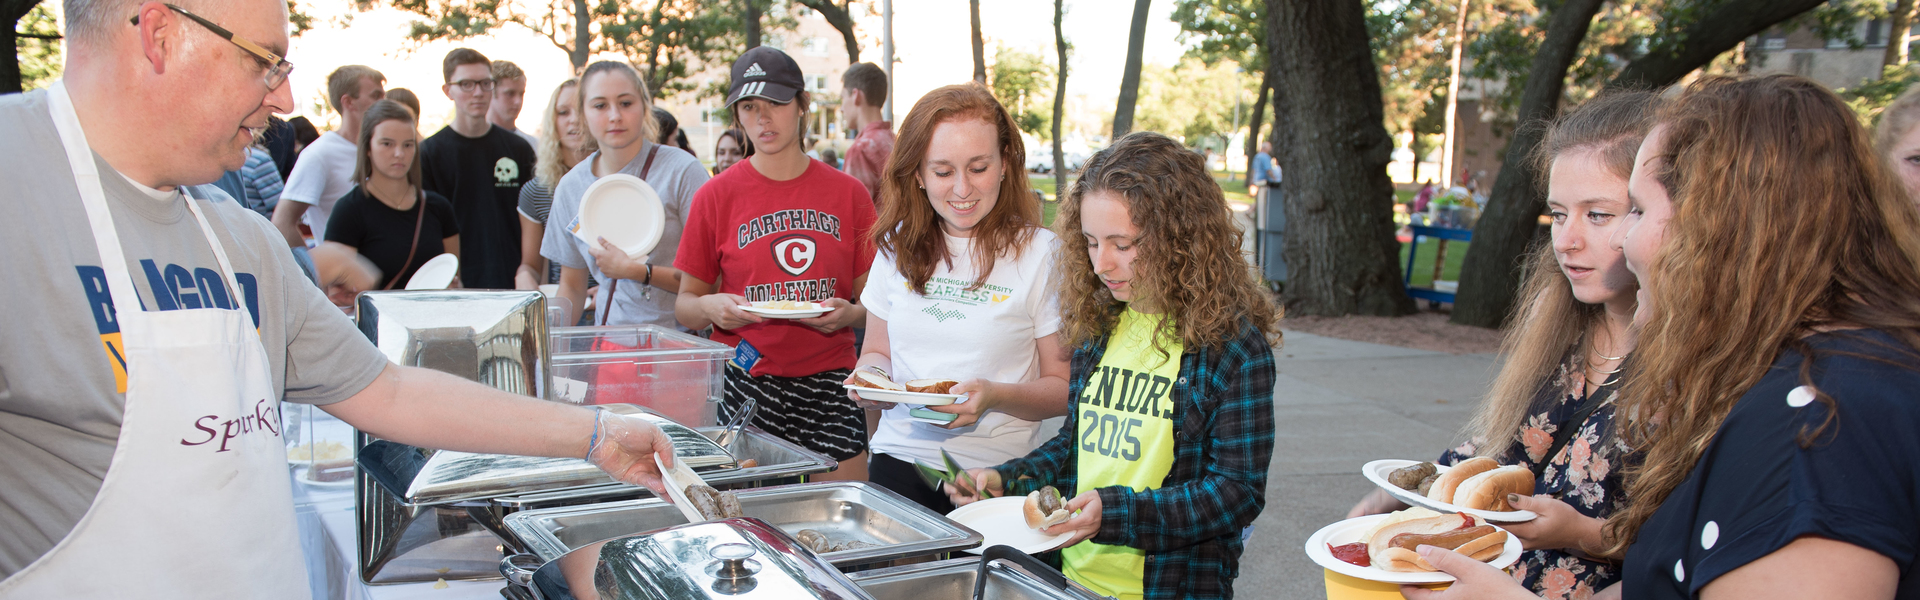 CookOUT event for Welcome Week